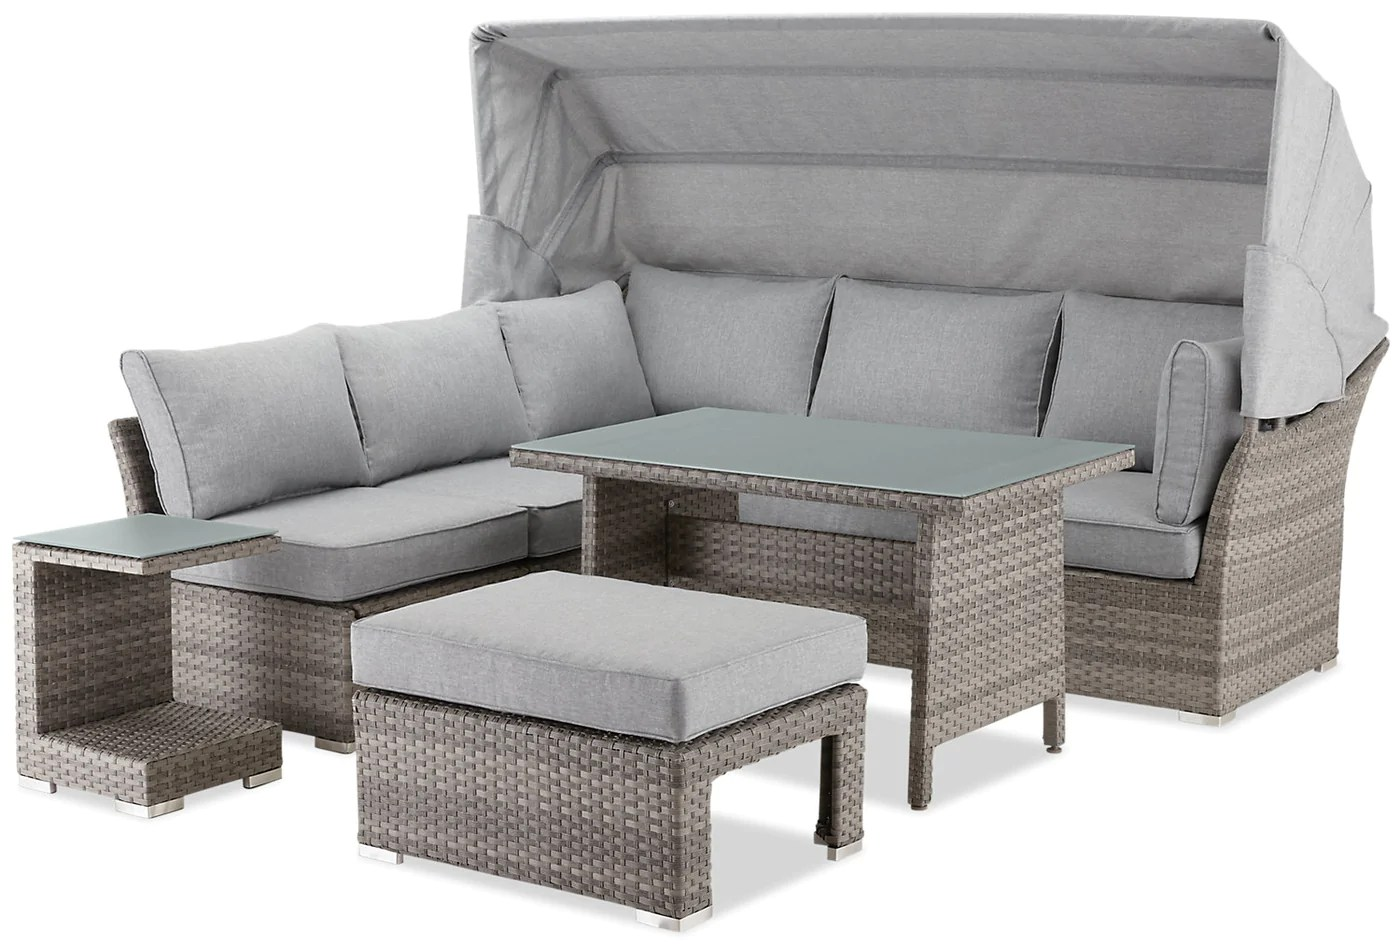 Bermuda 6 Piece Modular Sectional Package With Sunshade The Brick